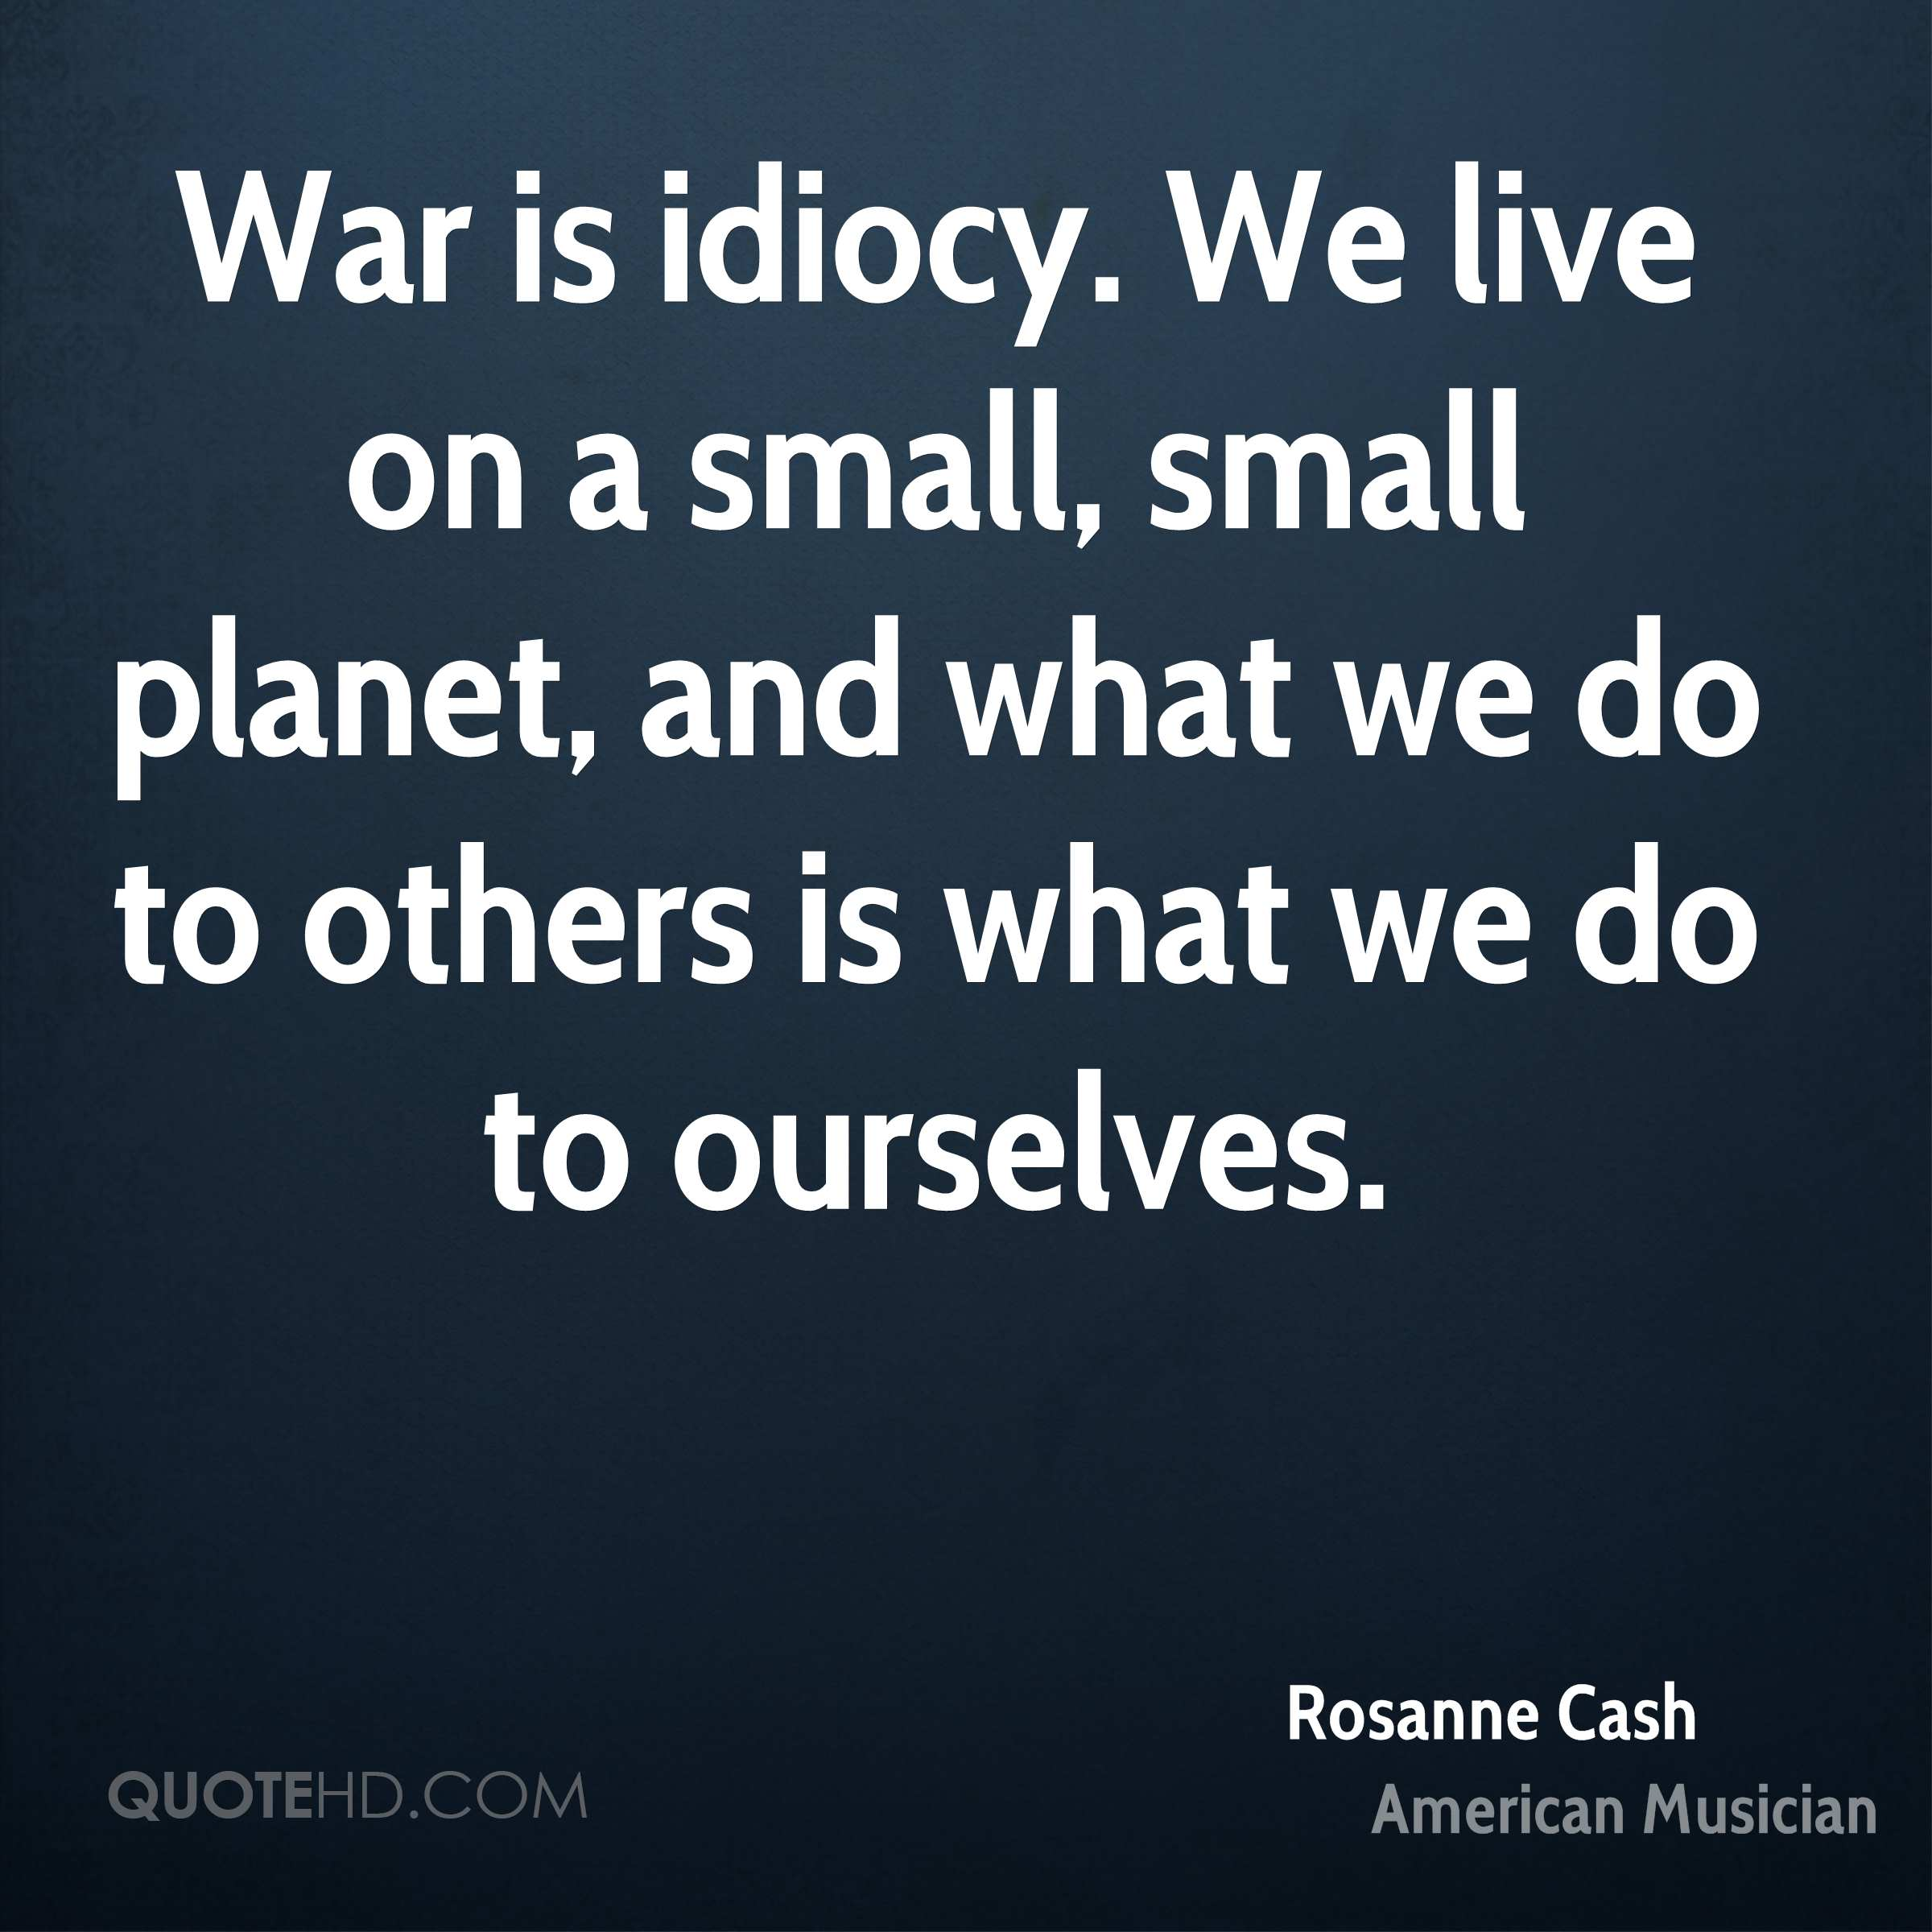 War is idiocy. We live on a small, small planet, and what we do to others is what we do to ourselves.